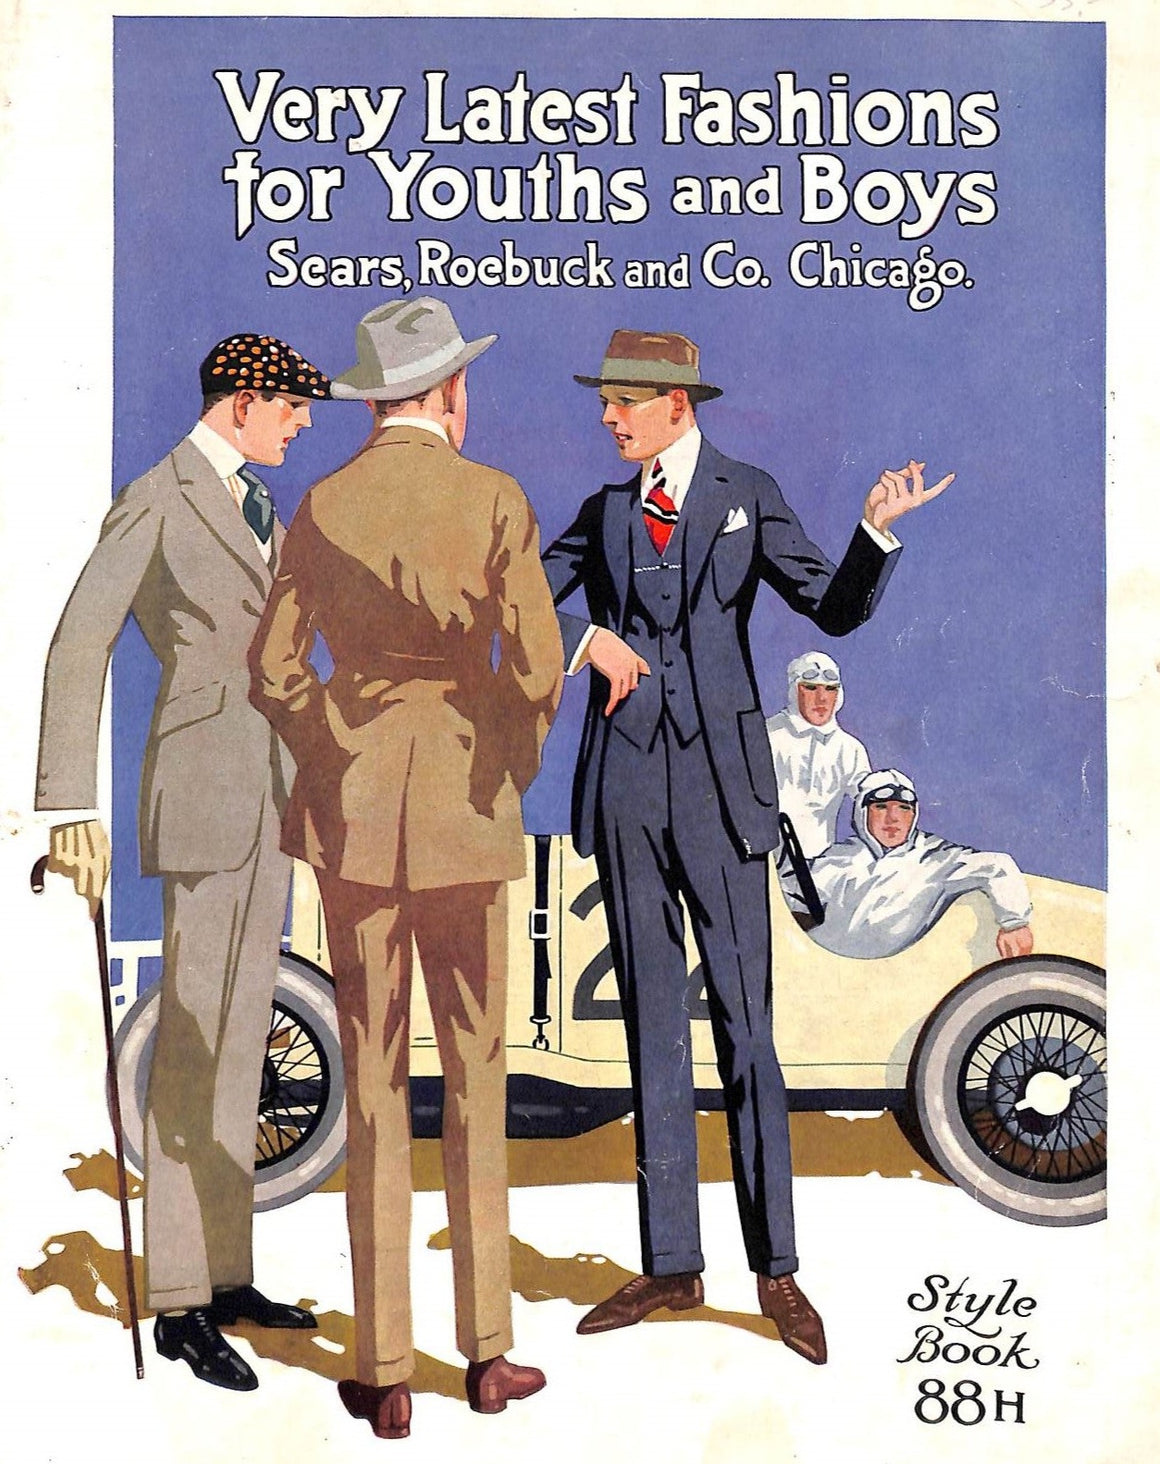 Very Latest Fashions for Youths and Boys: Sears, Roebuck and Co. Chicago. - Style Book 88H